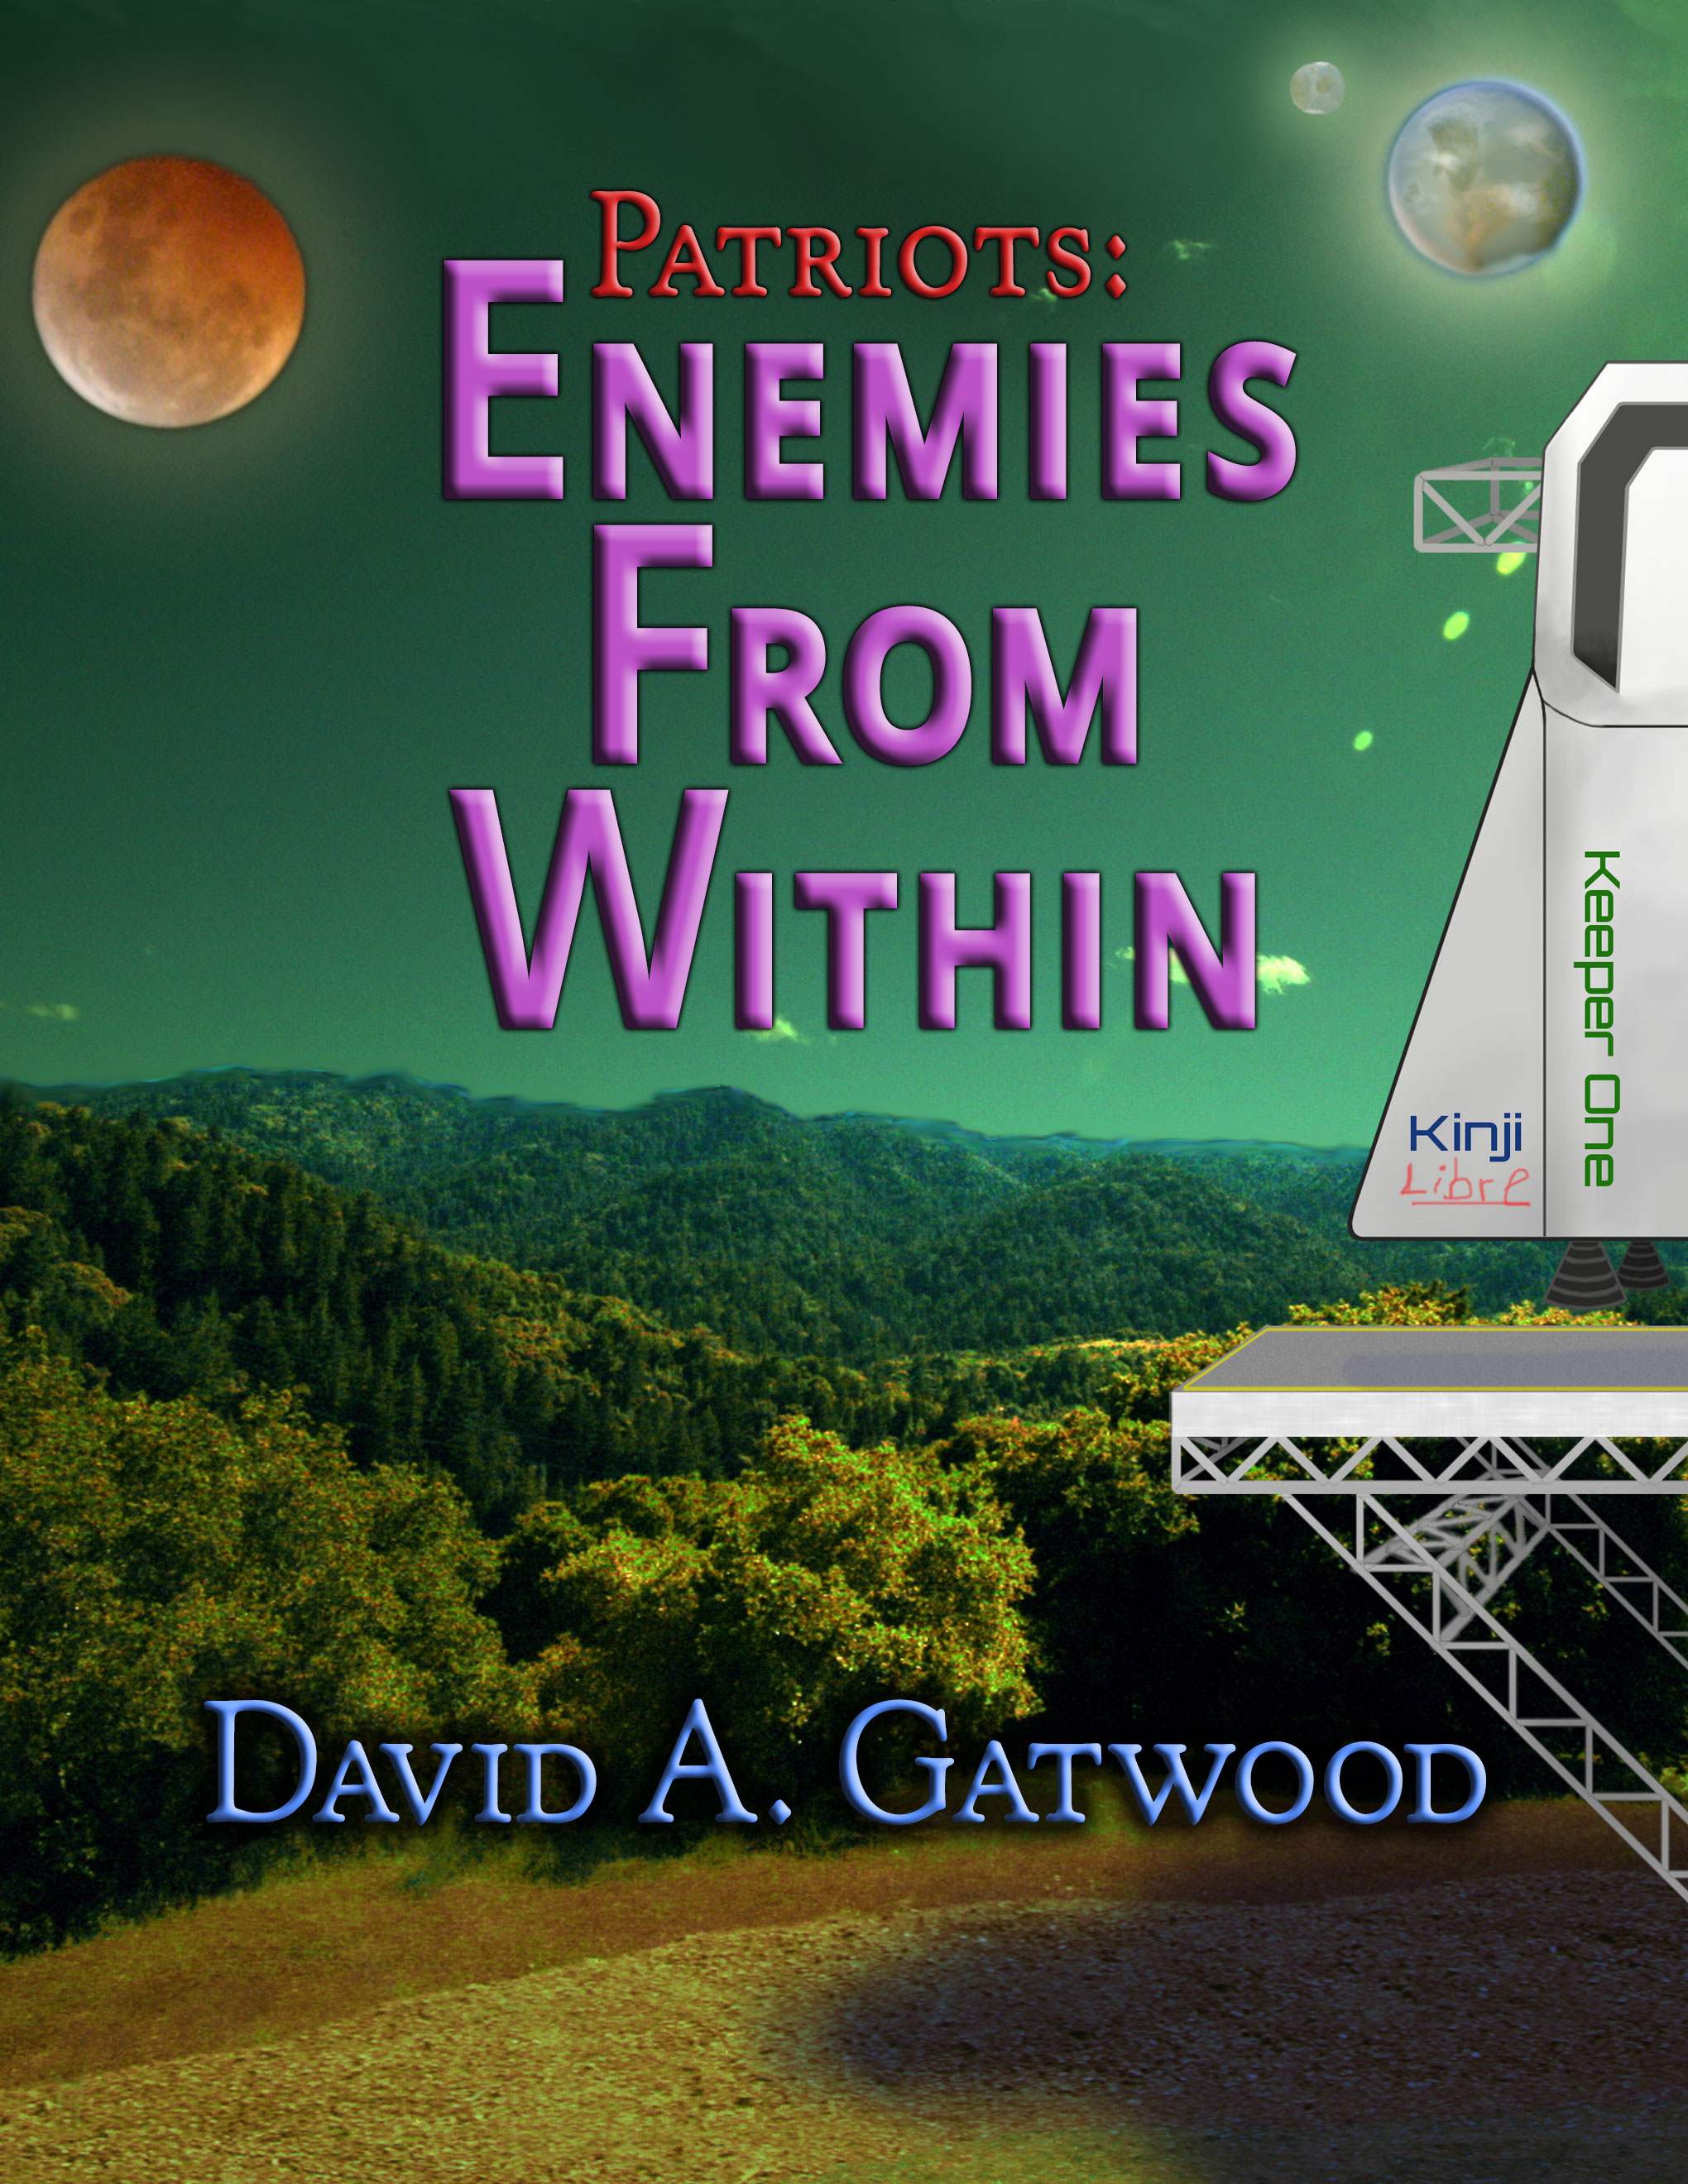 Cover art image for Enemies From Within